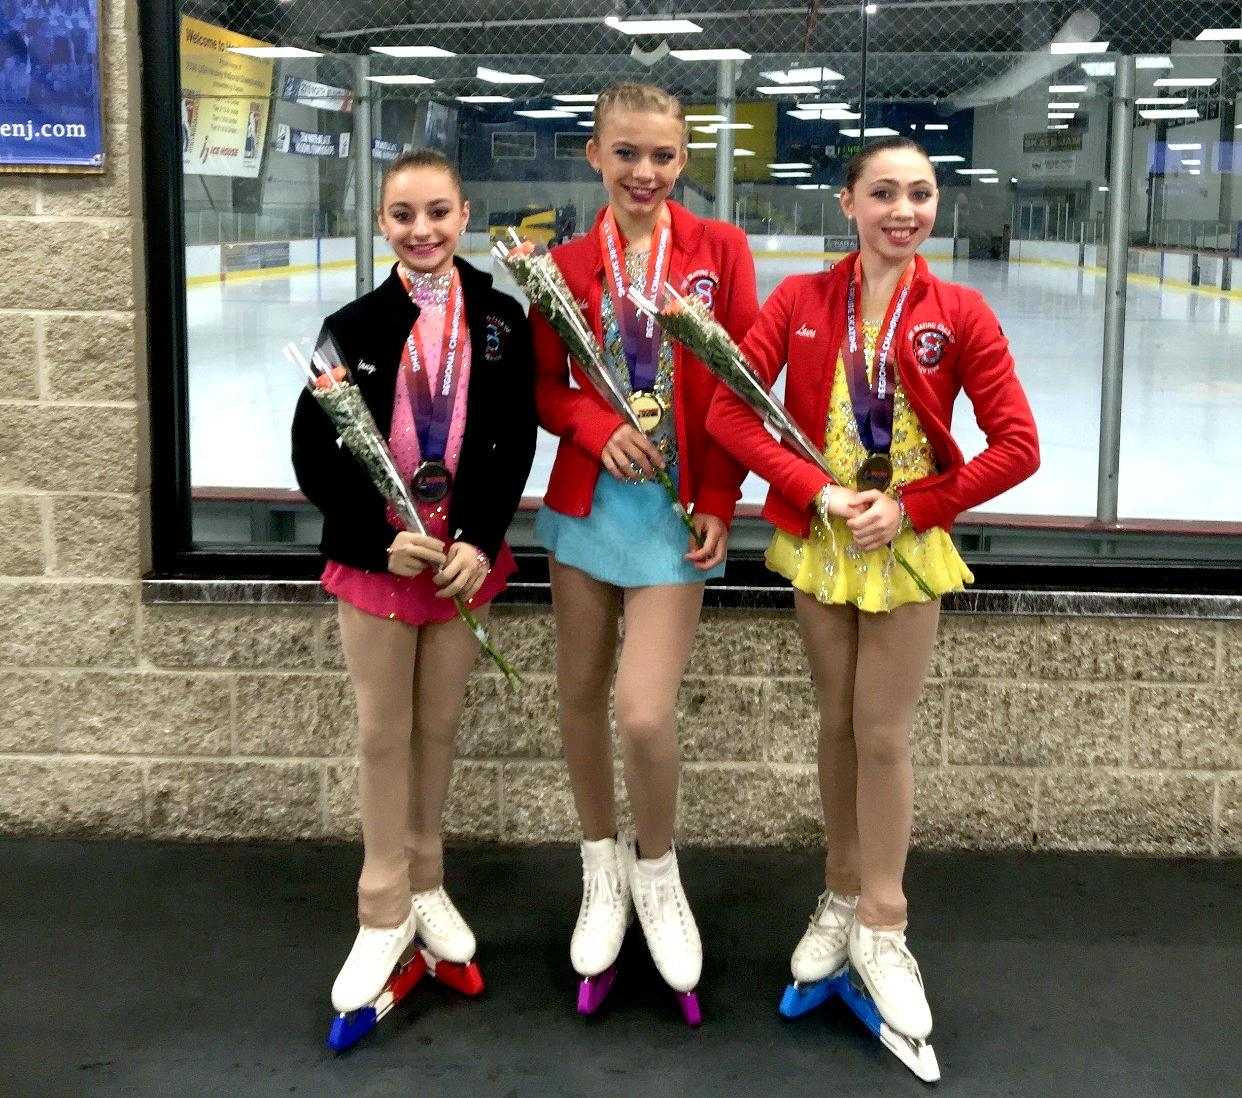 Violeta Ushakova (1st, SCNY); irene Kim (2nd, Ice House NJFSC - Not Shown); Laura Jacobson (3rd, SCNY); Tiffany Pennella (4th, SCNY)